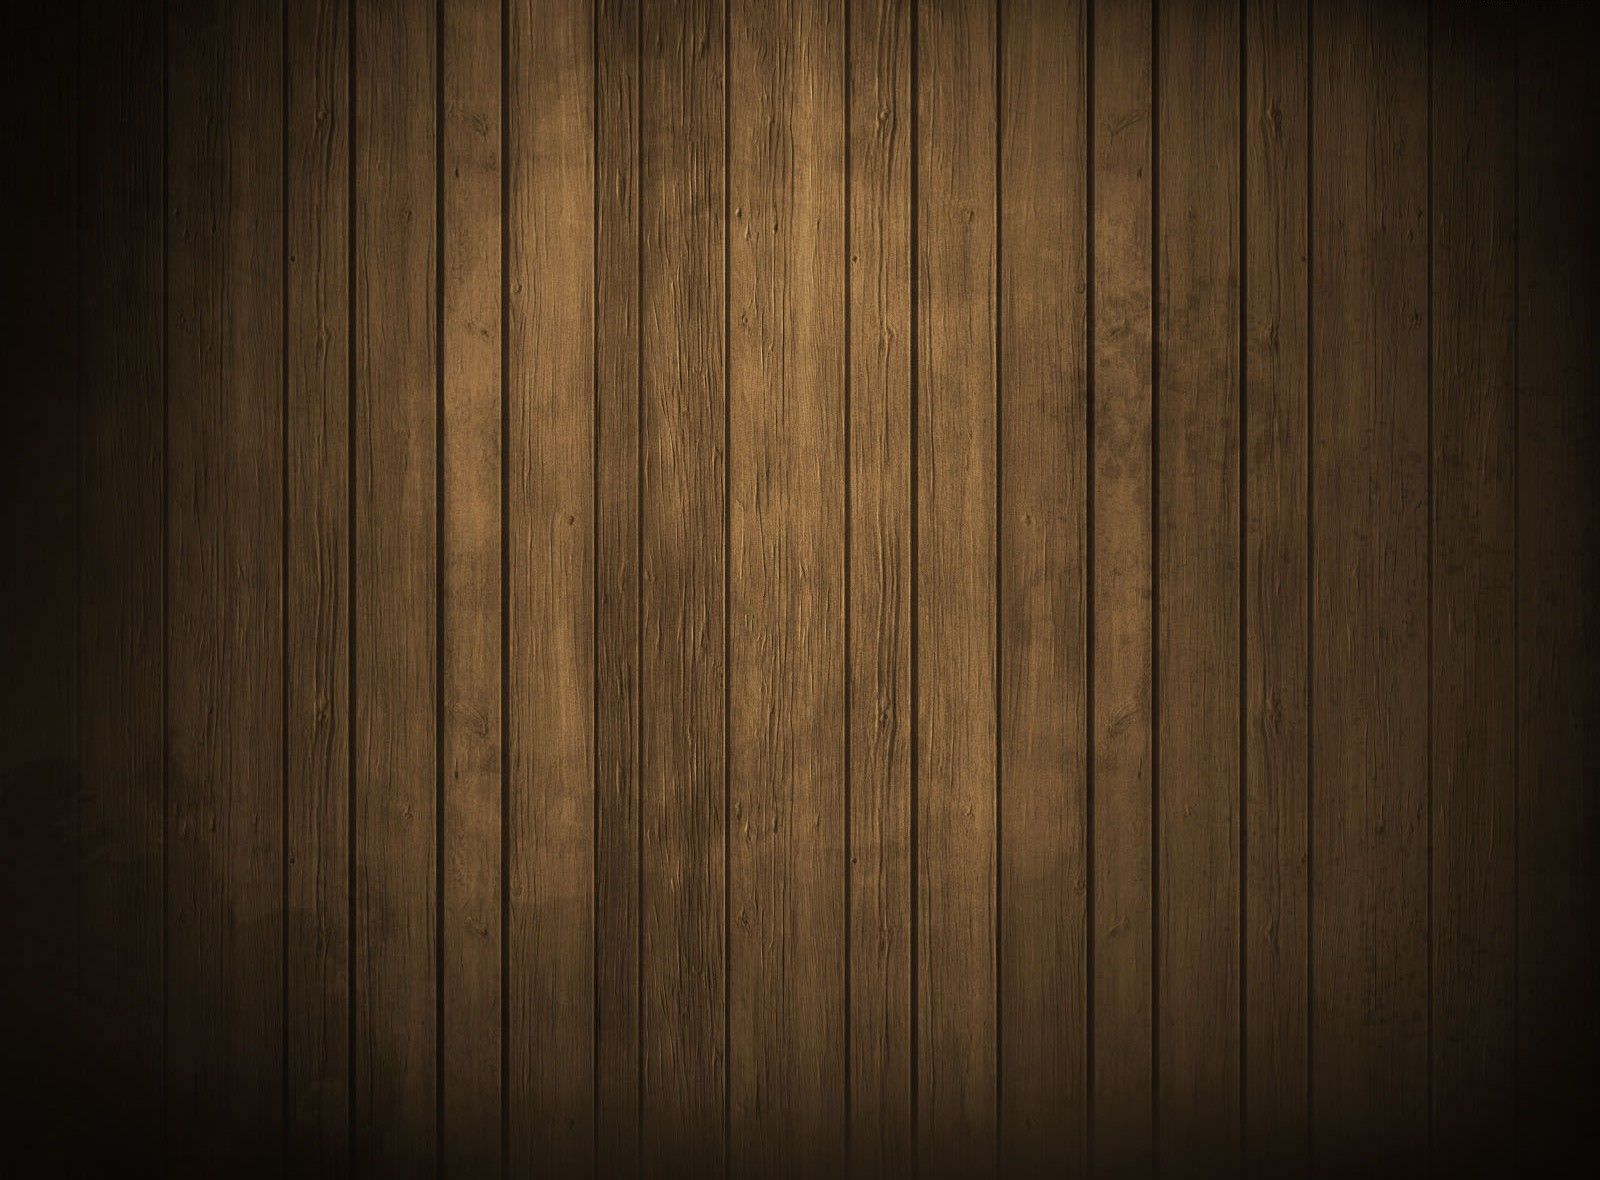 30 HD Wood Backgrounds Wallpapers FreeCreatives 1600x1180